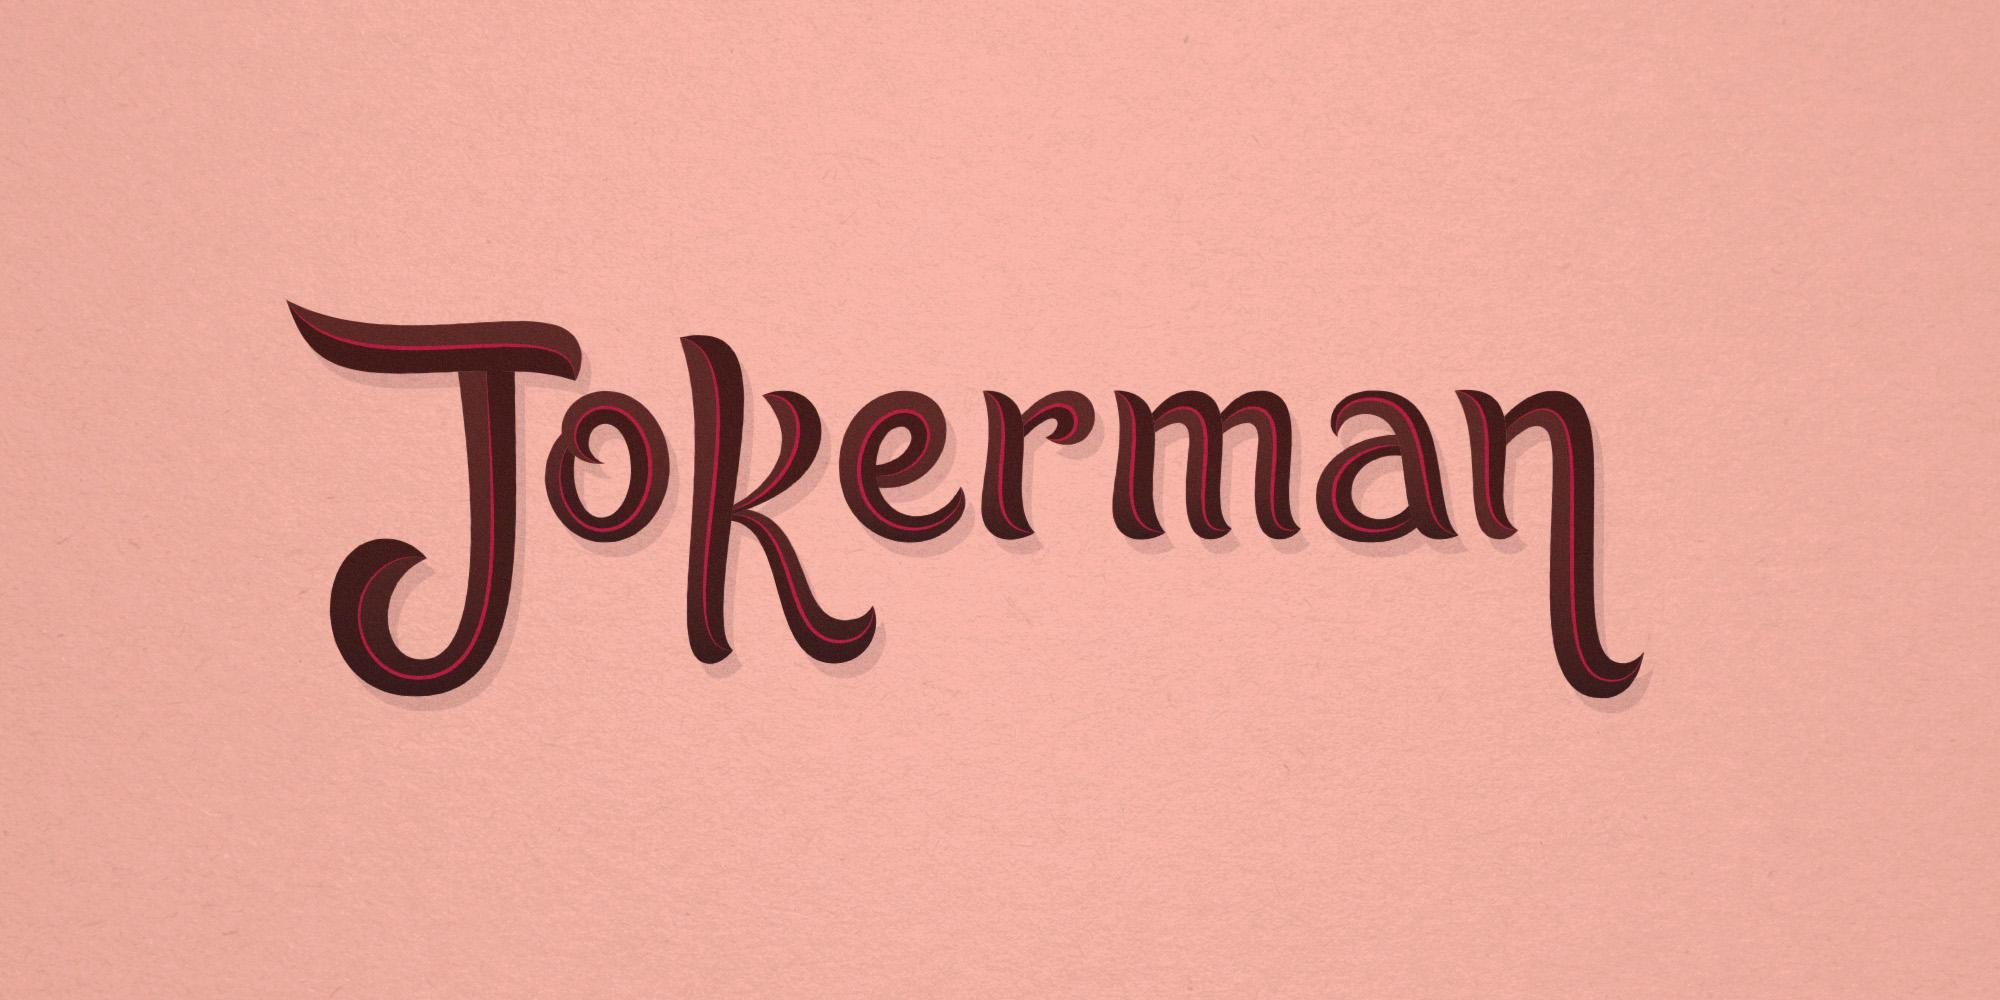 Jokerman reborn: Wide view